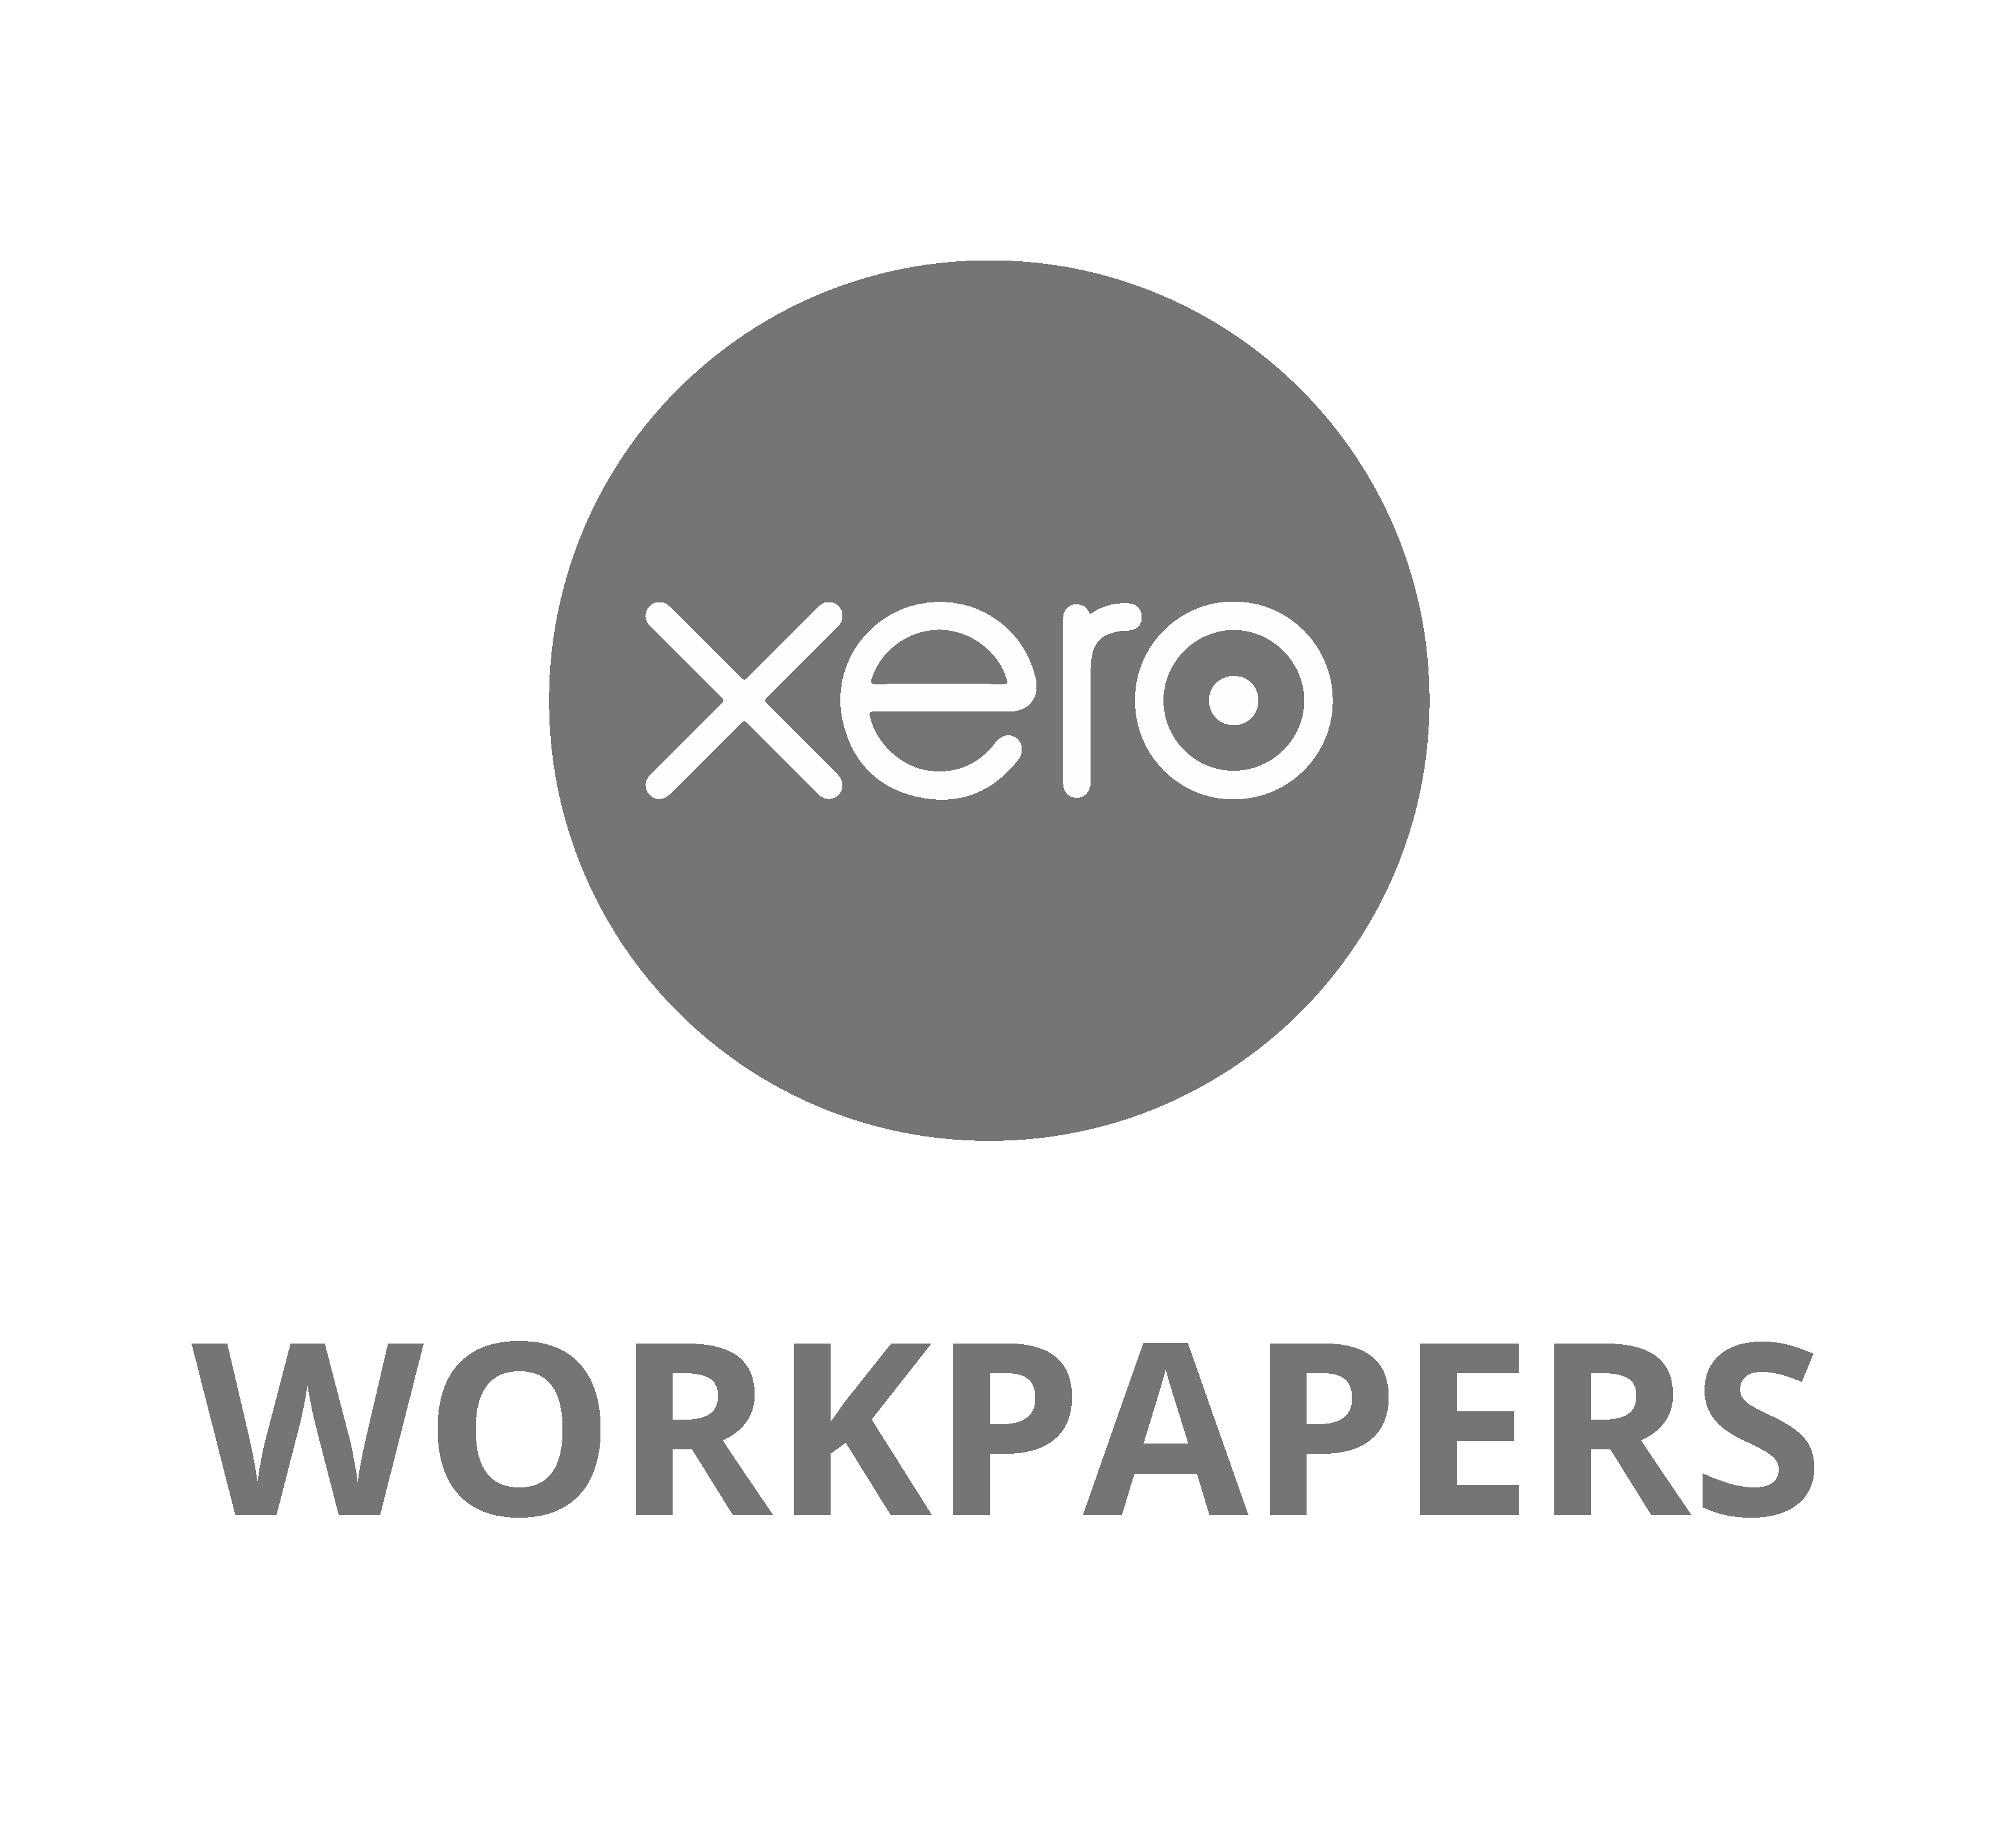 Xero Workpapers